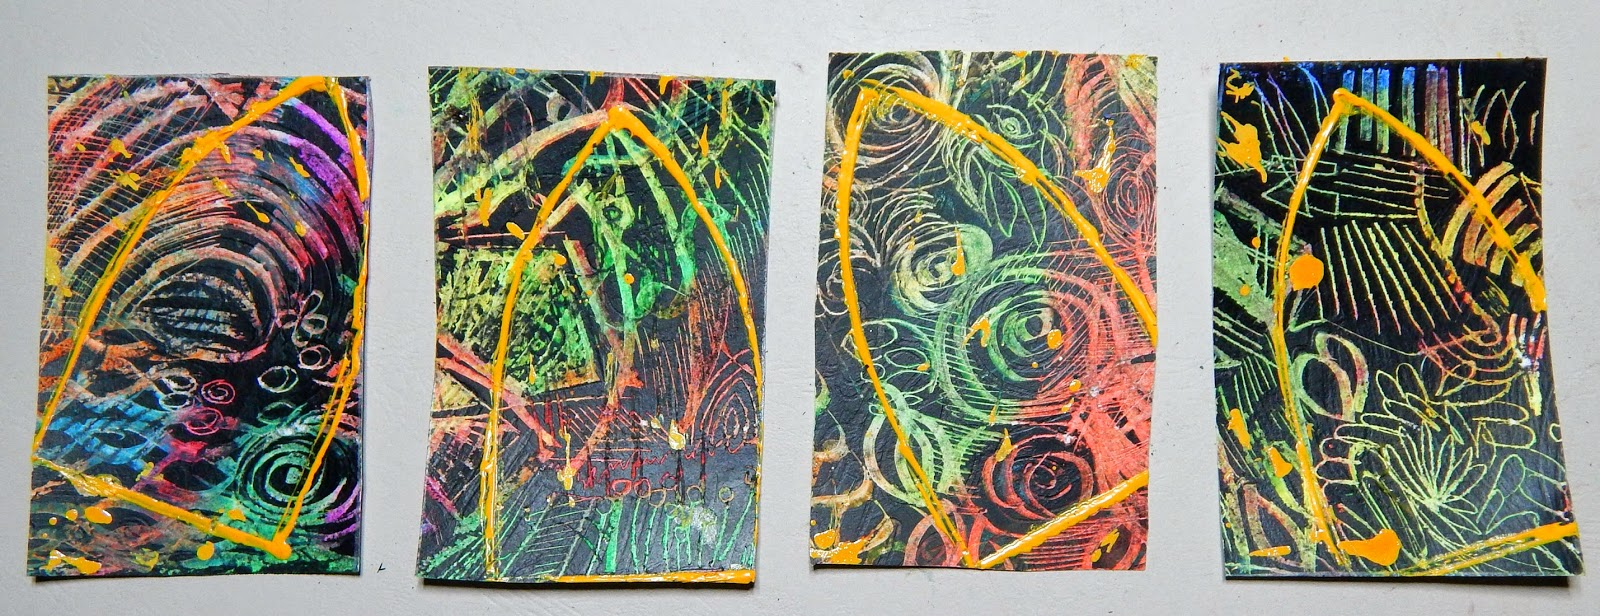 homemade diy scratchboard art ATC stained glass